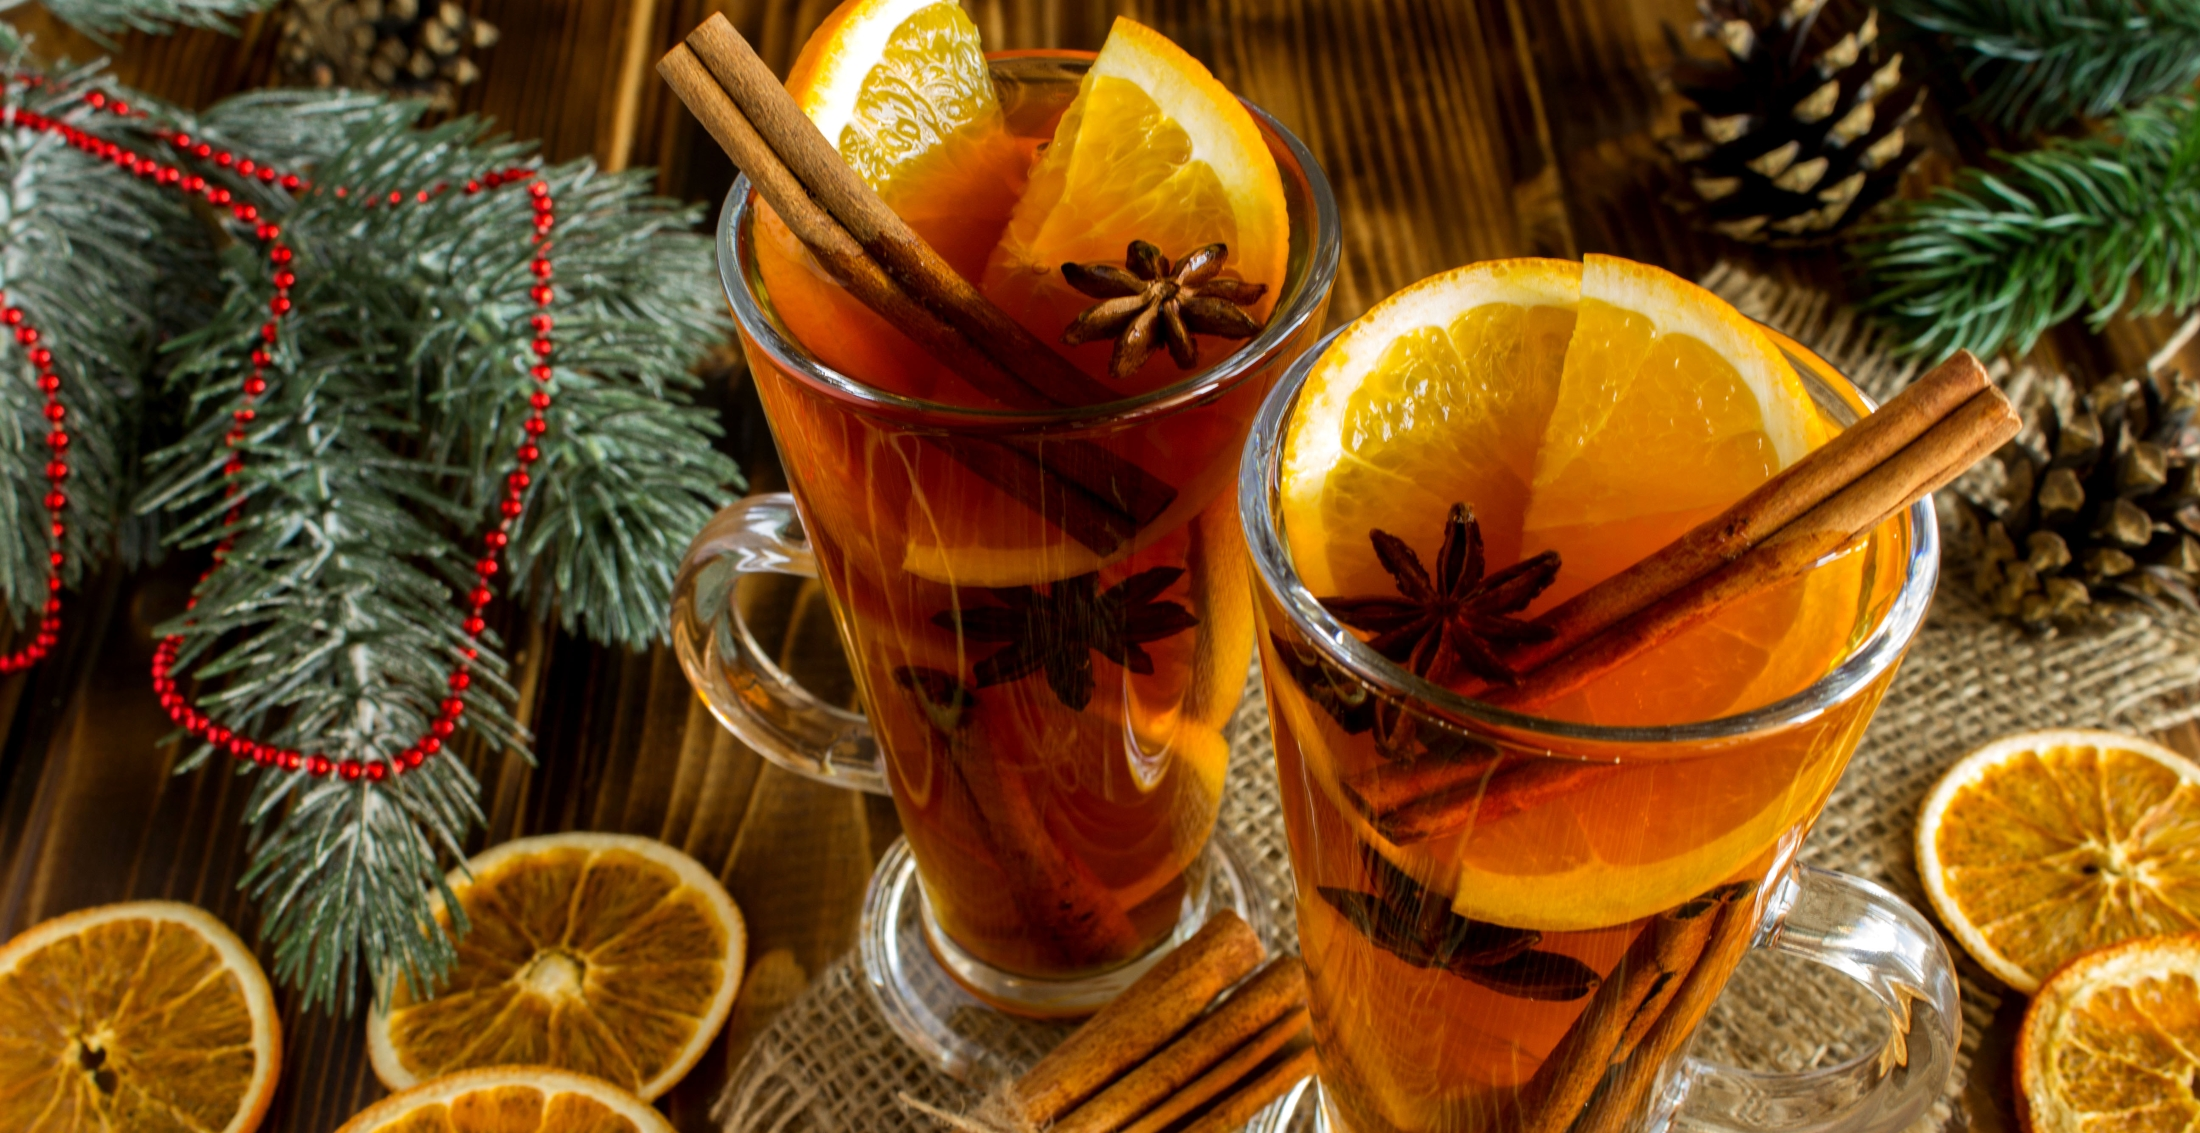 Want to get warm? Try a Grog (rum hot toddy)